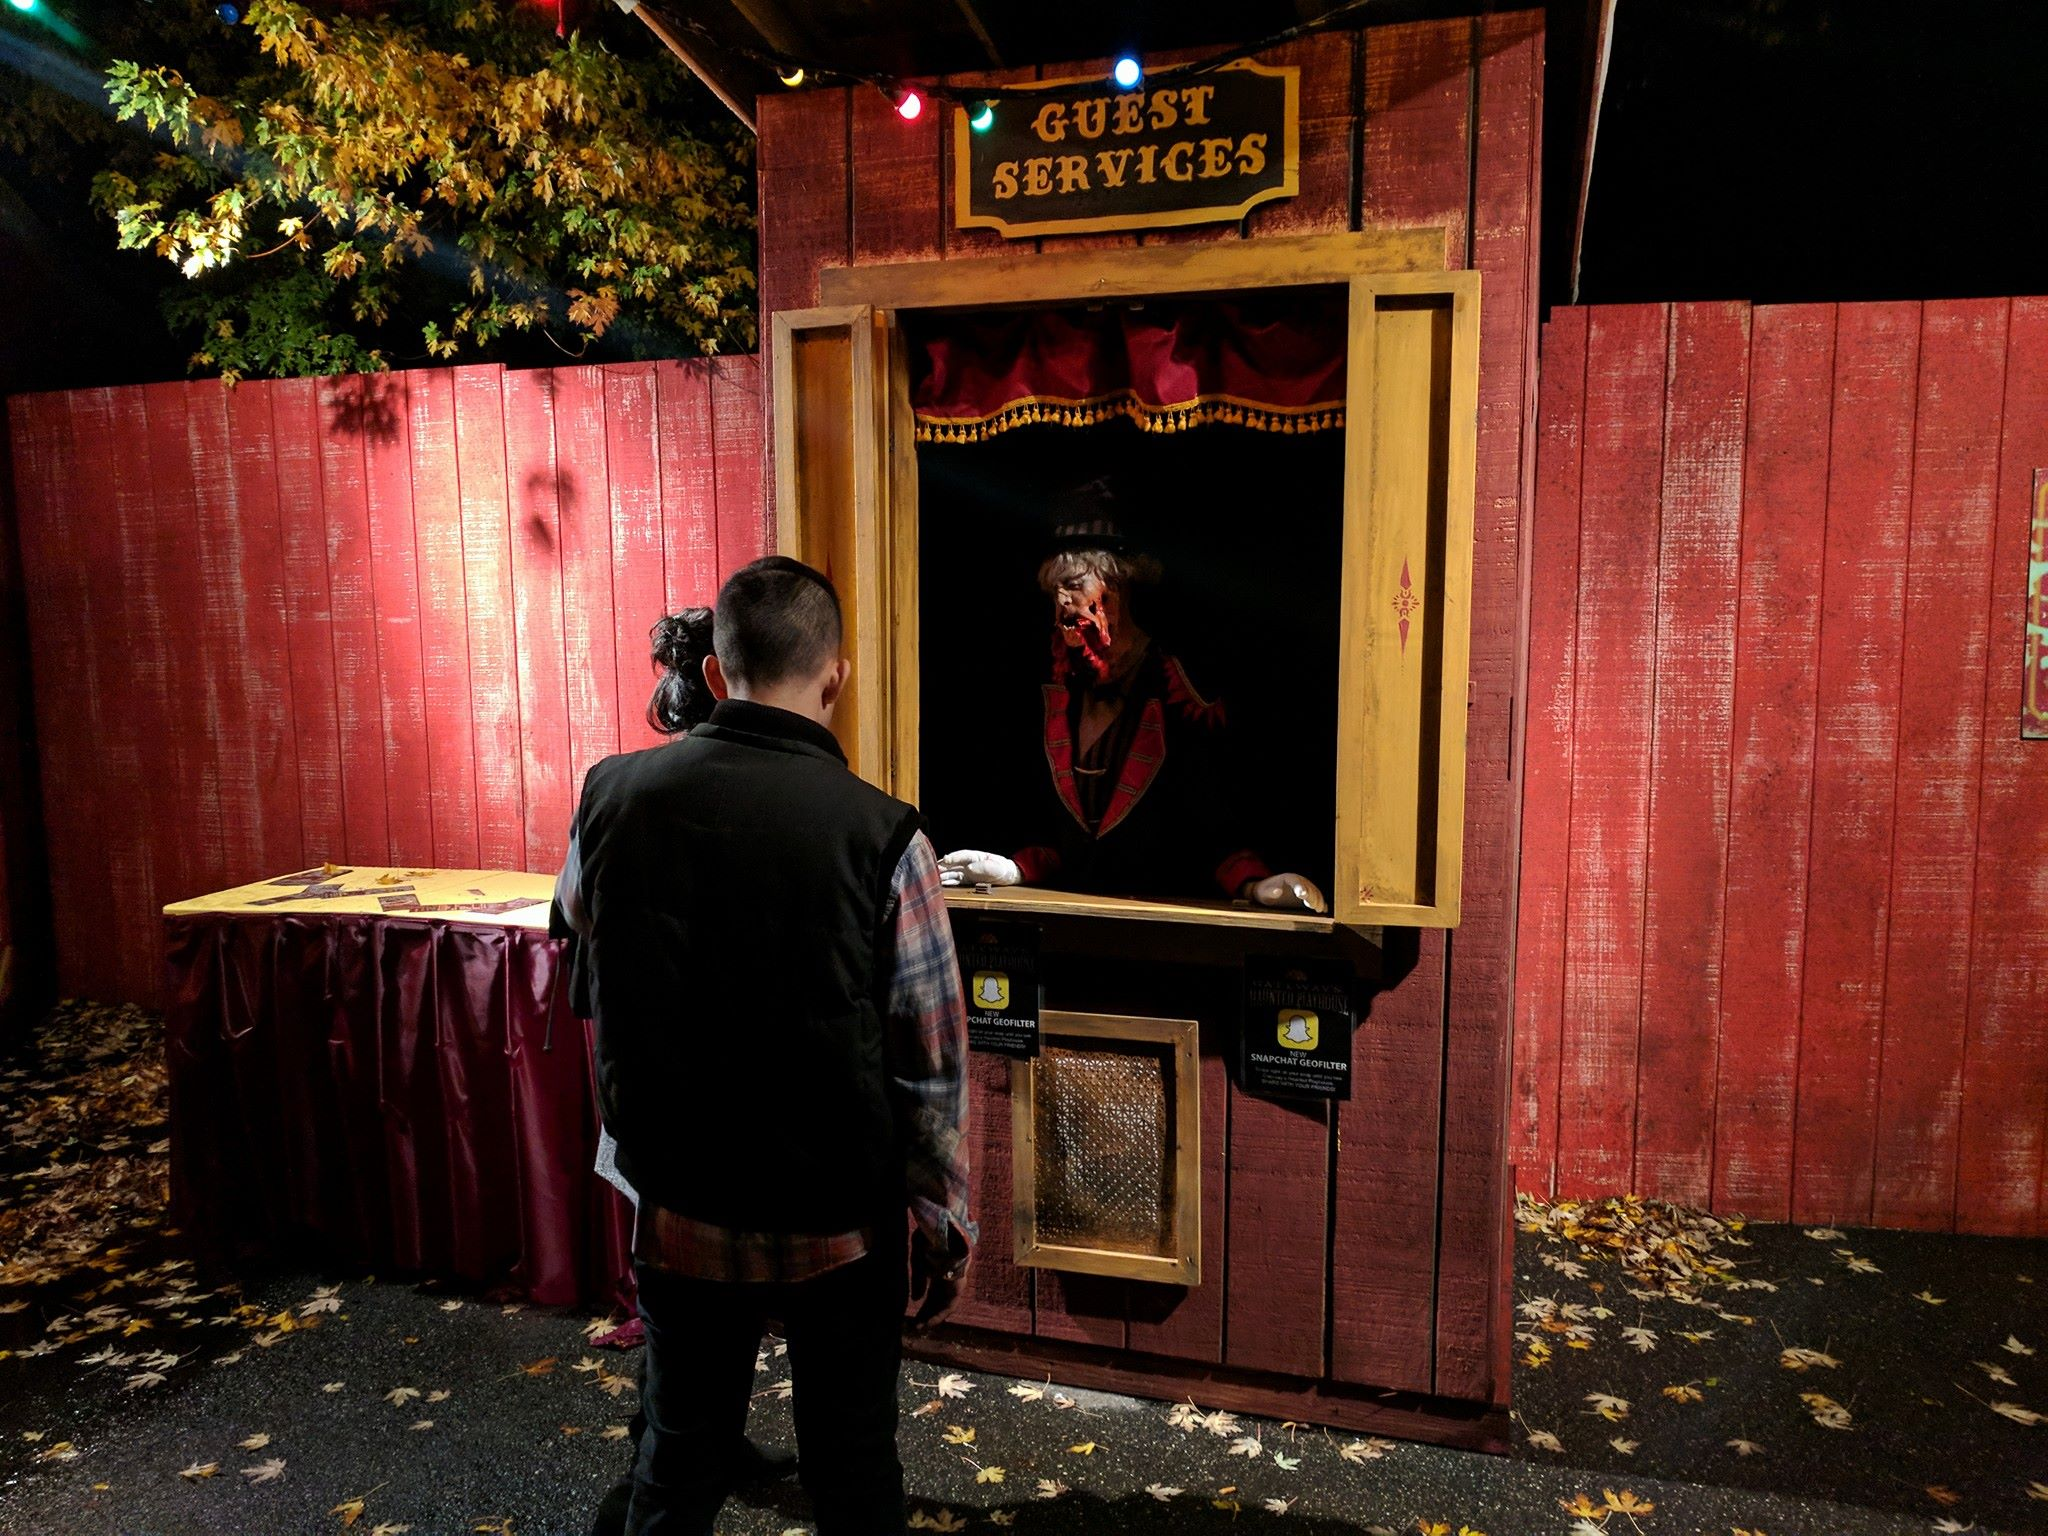 Gateway Haunted Playhouse 2017 Review - The Scare Factor